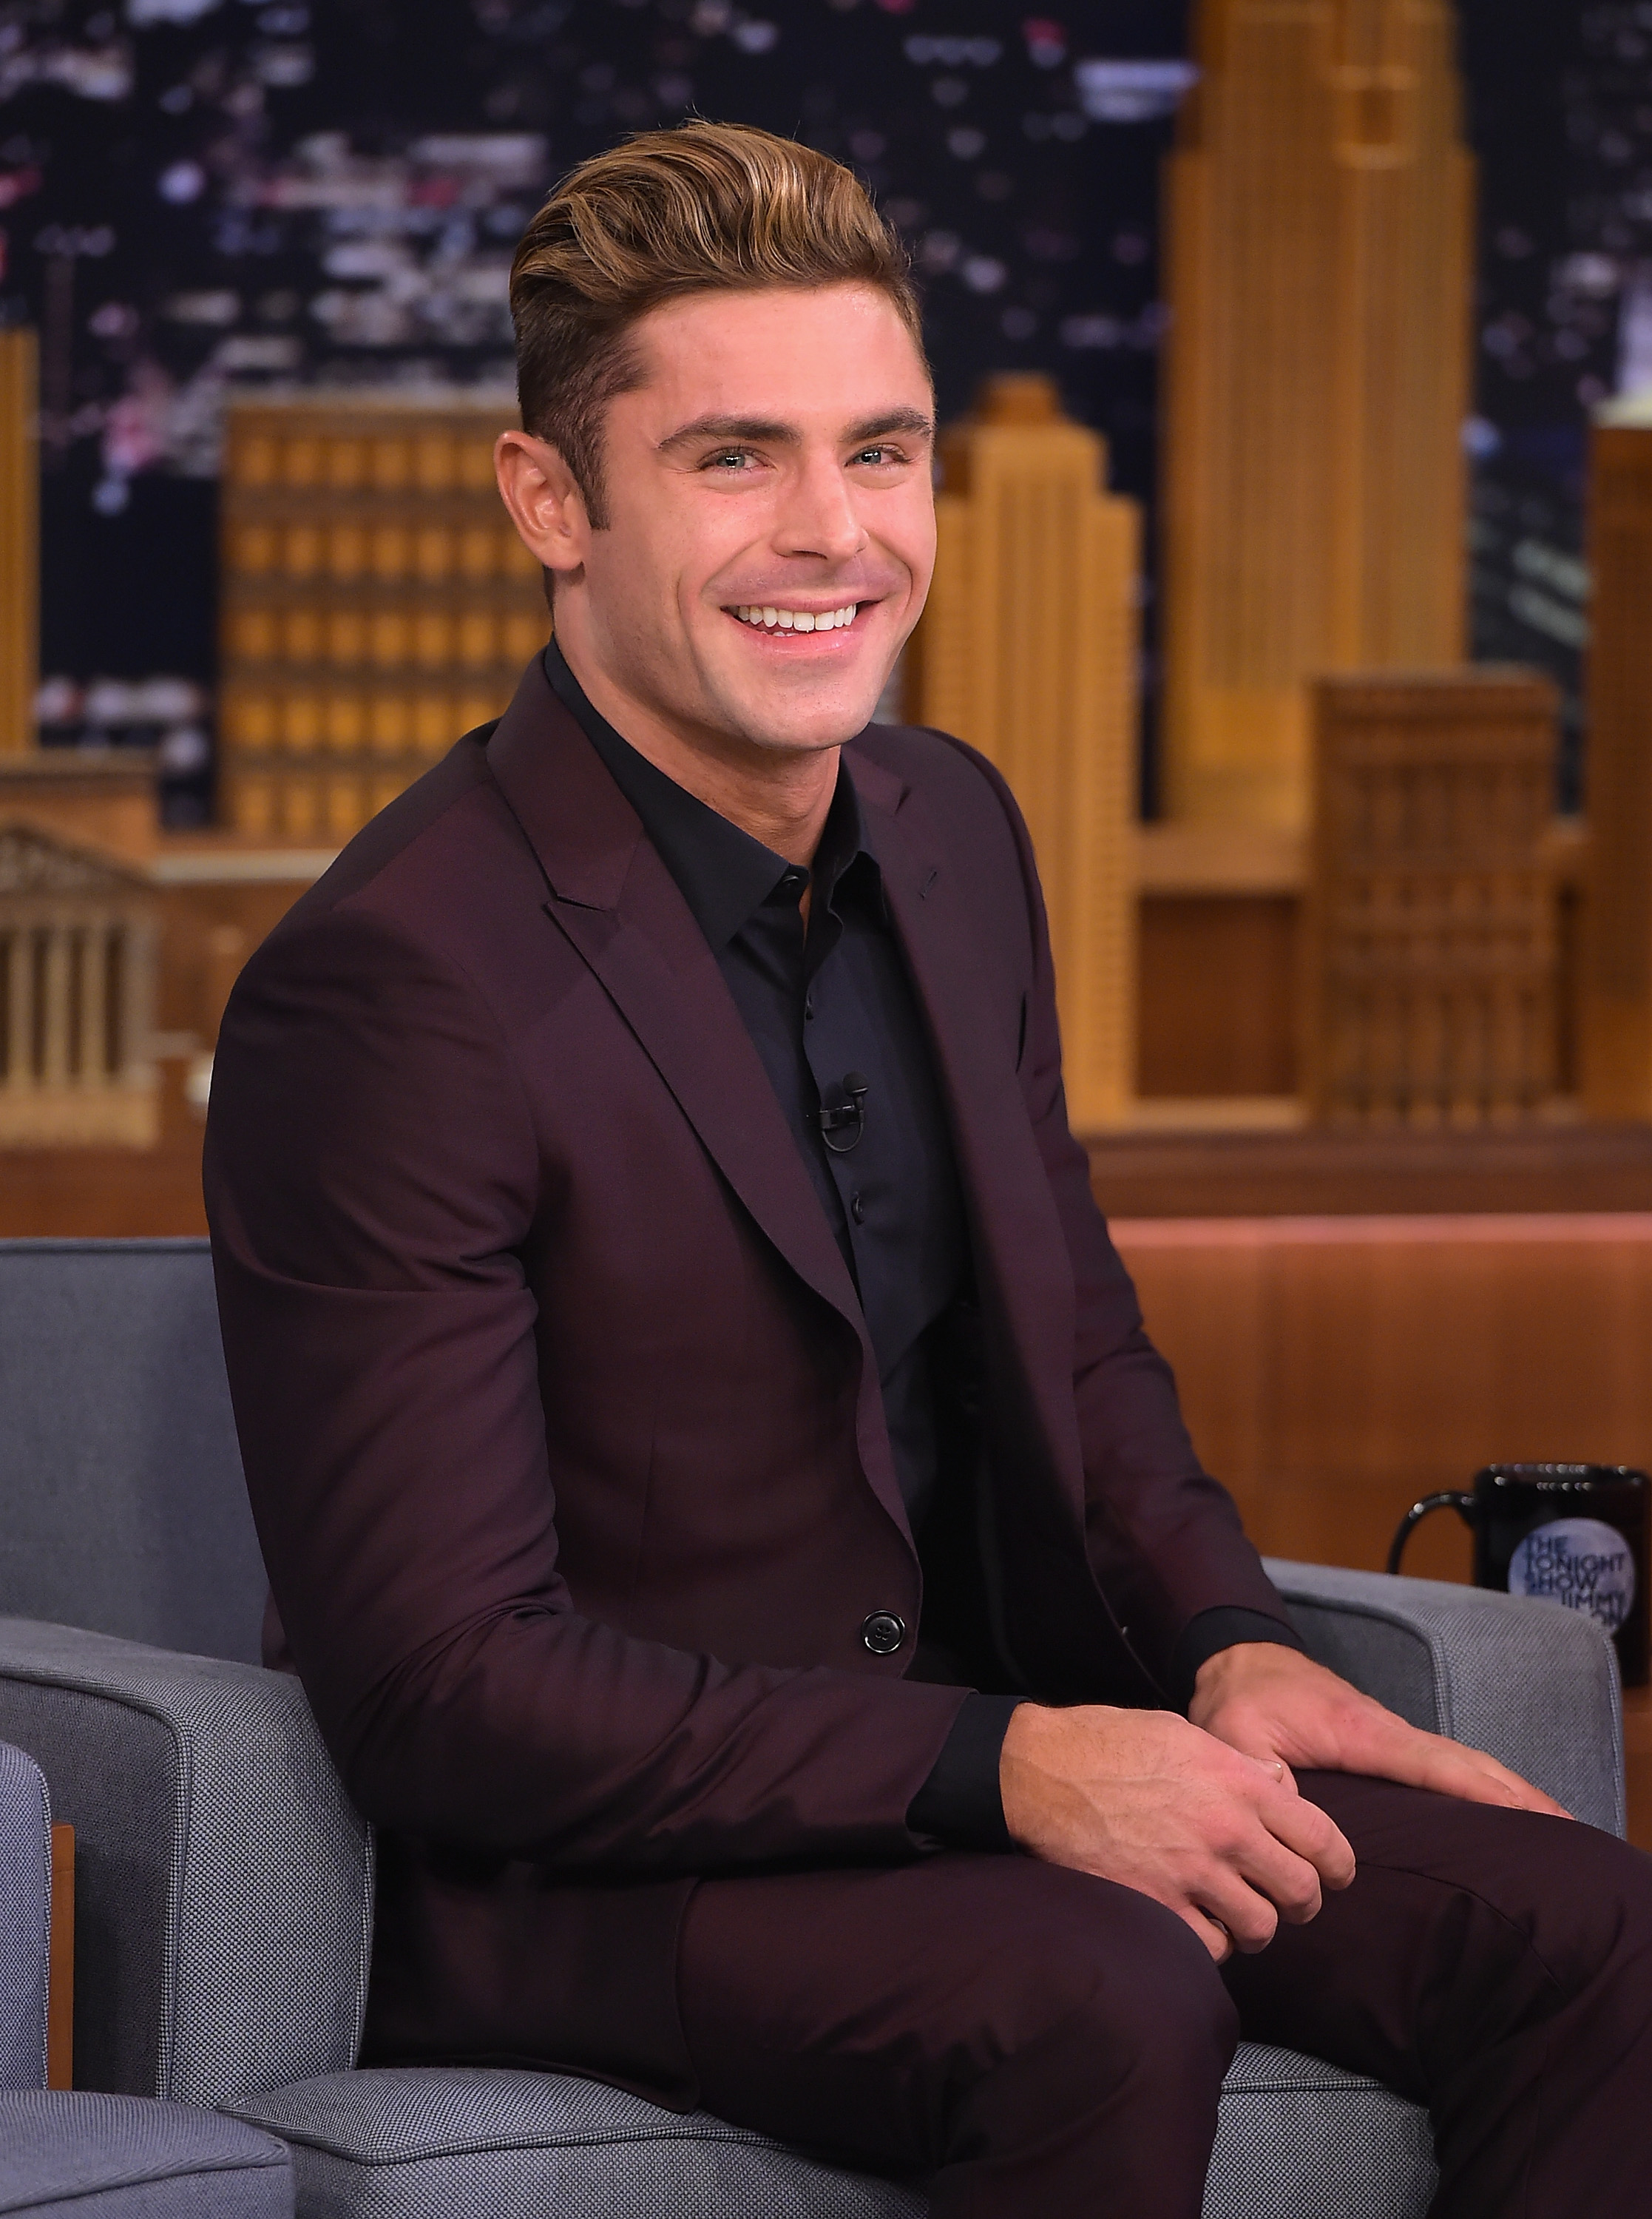 Is Zac Efron S Platinum Blonde Hair Real The Actor Debuted A